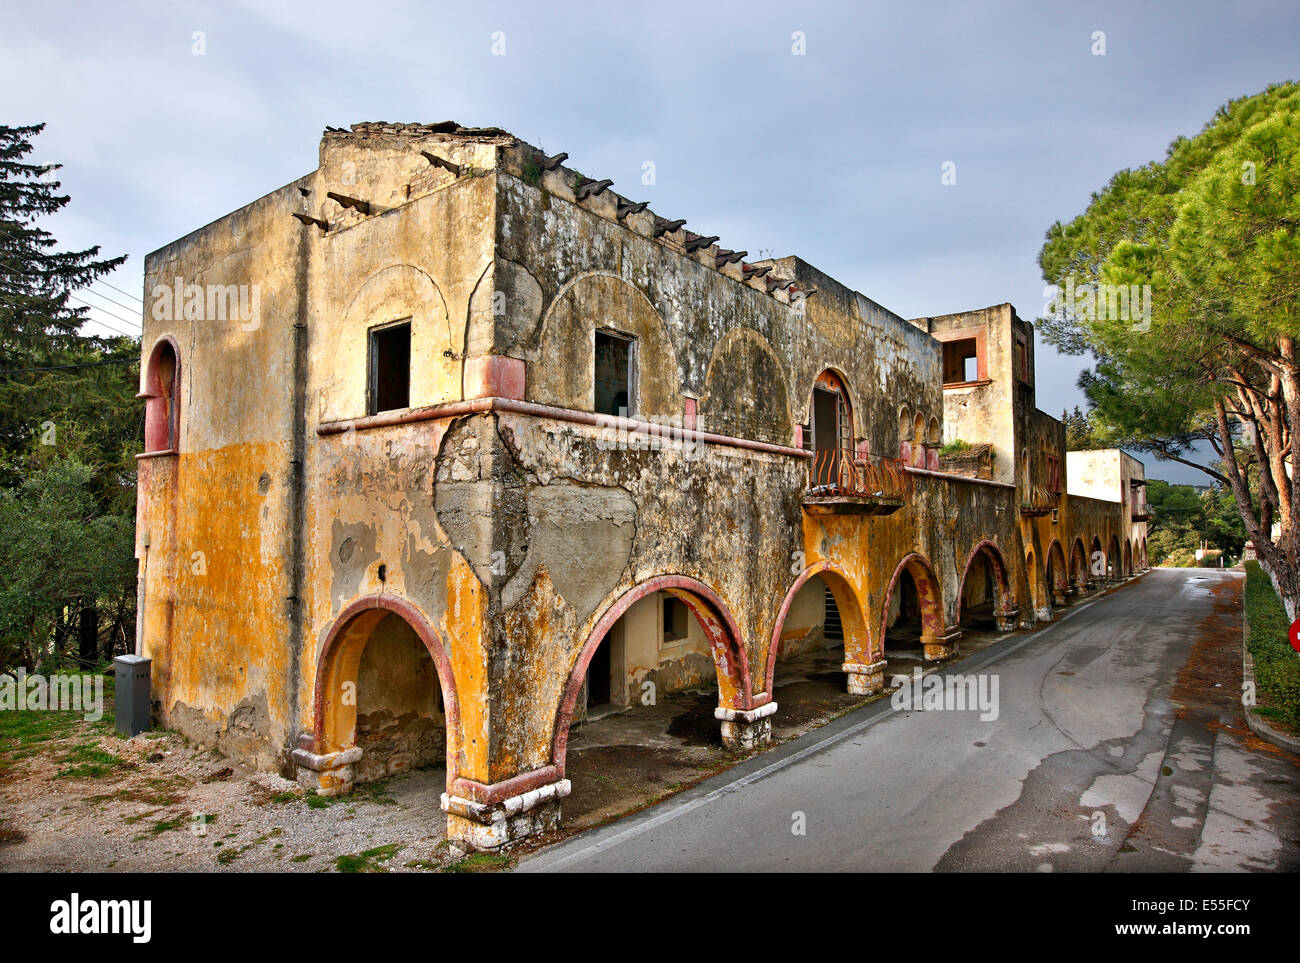 The 'forgotten' village of Eleousa, known as one of the 'Italian' villages of Rhodes island, Dodecanese, - Stock Image